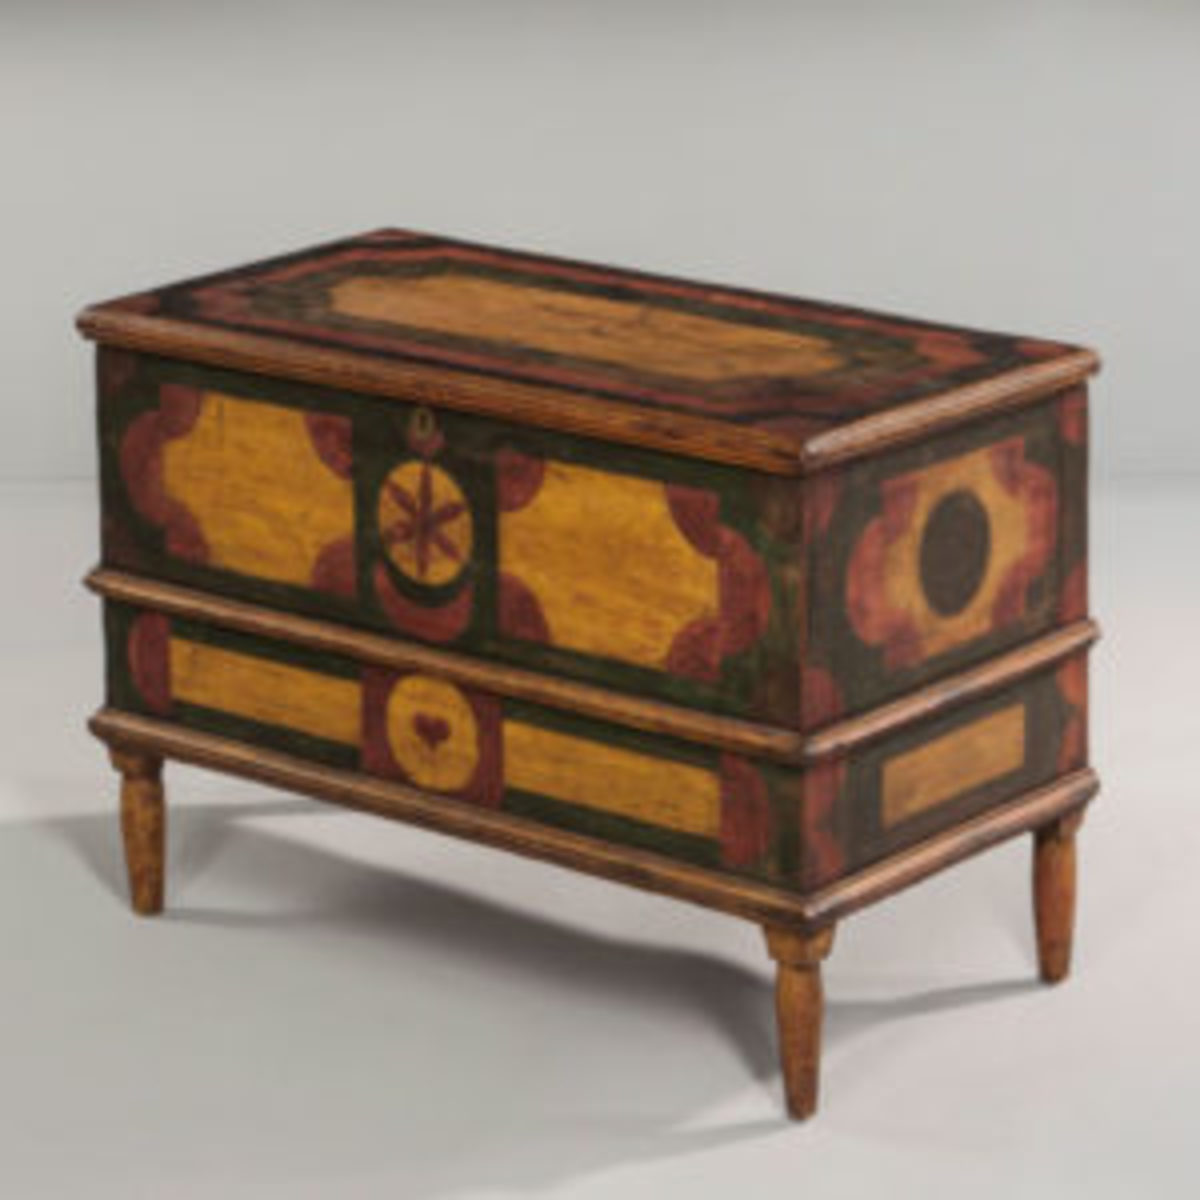 Small geometric paint-decorated blanket chest, 22 1/2 x 32 x 17 in., possibly New York or Pennsylvania, early 19th century. Applied moldings and short turned tapering legs, decorated in yellow, green, red, and black, the designs incorporating quarter-round, heart, and pinwheel elements. Courtesy of Skinner, Inc.